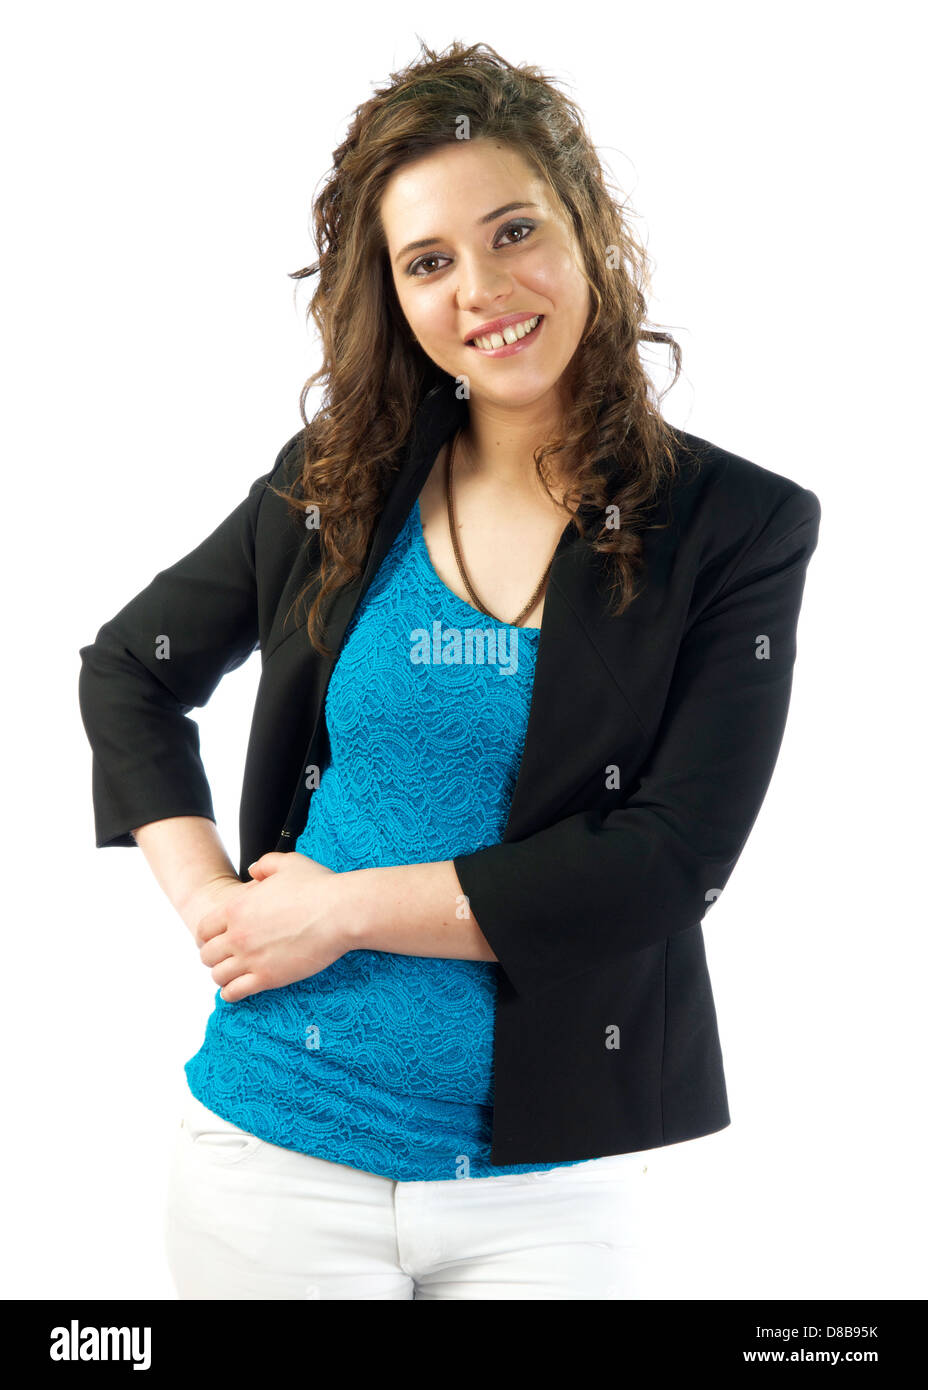 Woman elegant and casual dressed with beautifull expressions - Stock Image